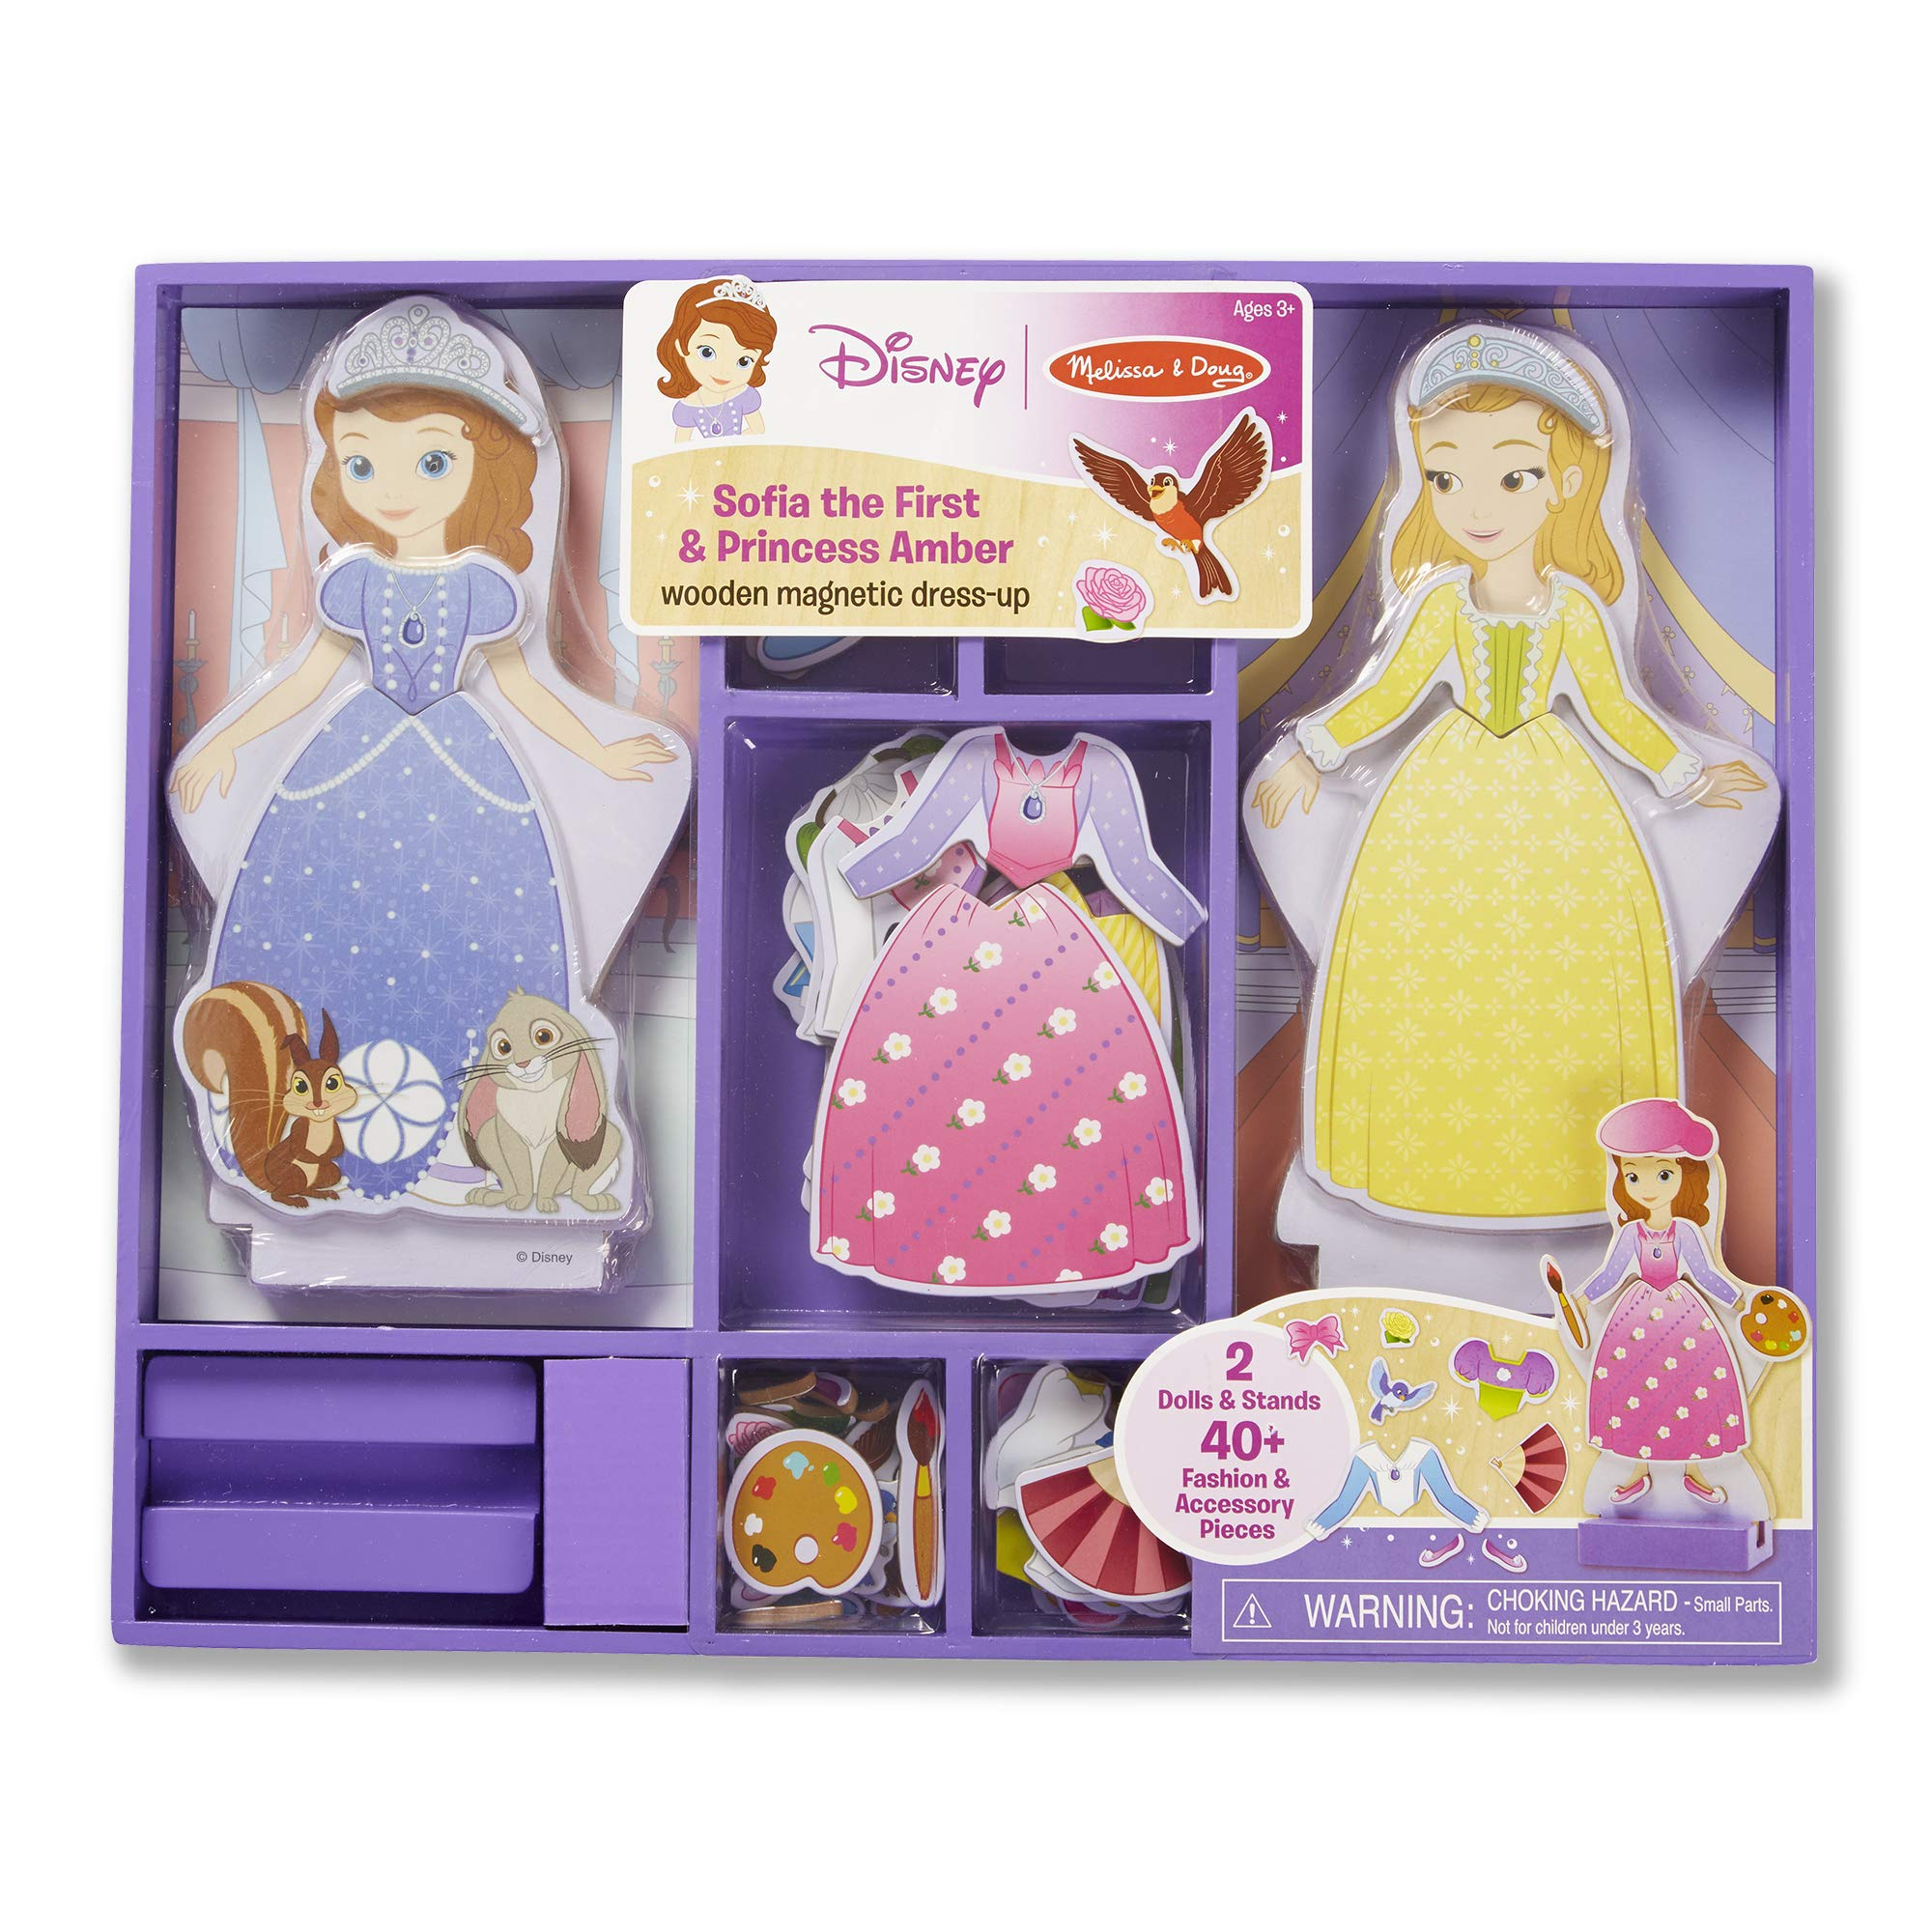 Melissa & Doug Disney Sofia the First and Princess Amber Magnetic Dress-Up Wooden Doll Pretend Play Set (40+ pcs) by Melissa & Doug